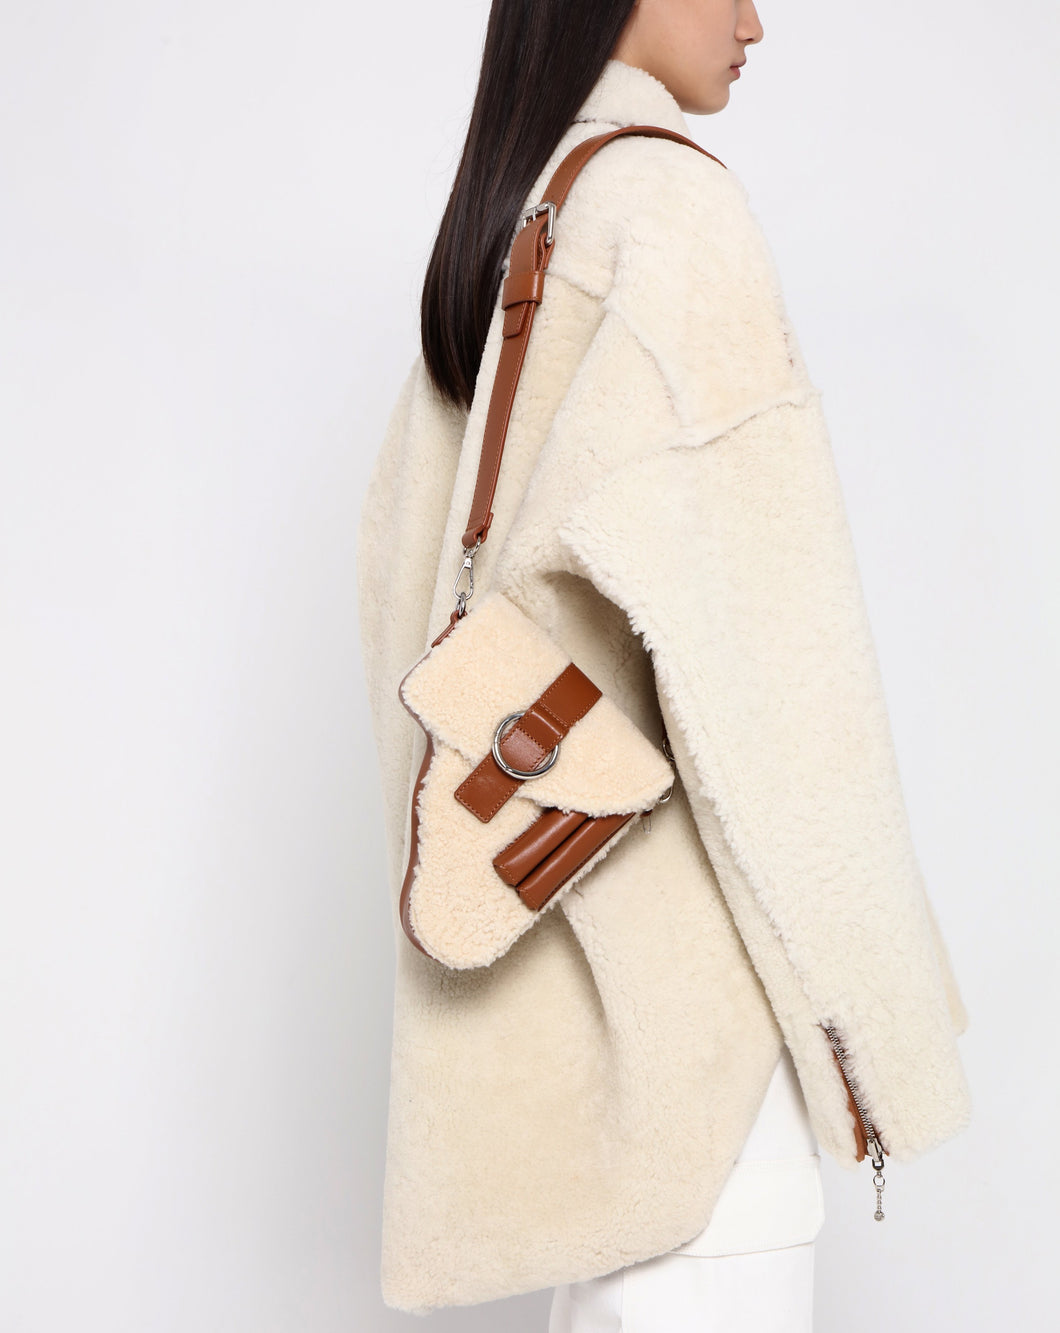 Brown Shearling Leather Multi Purpose Bag